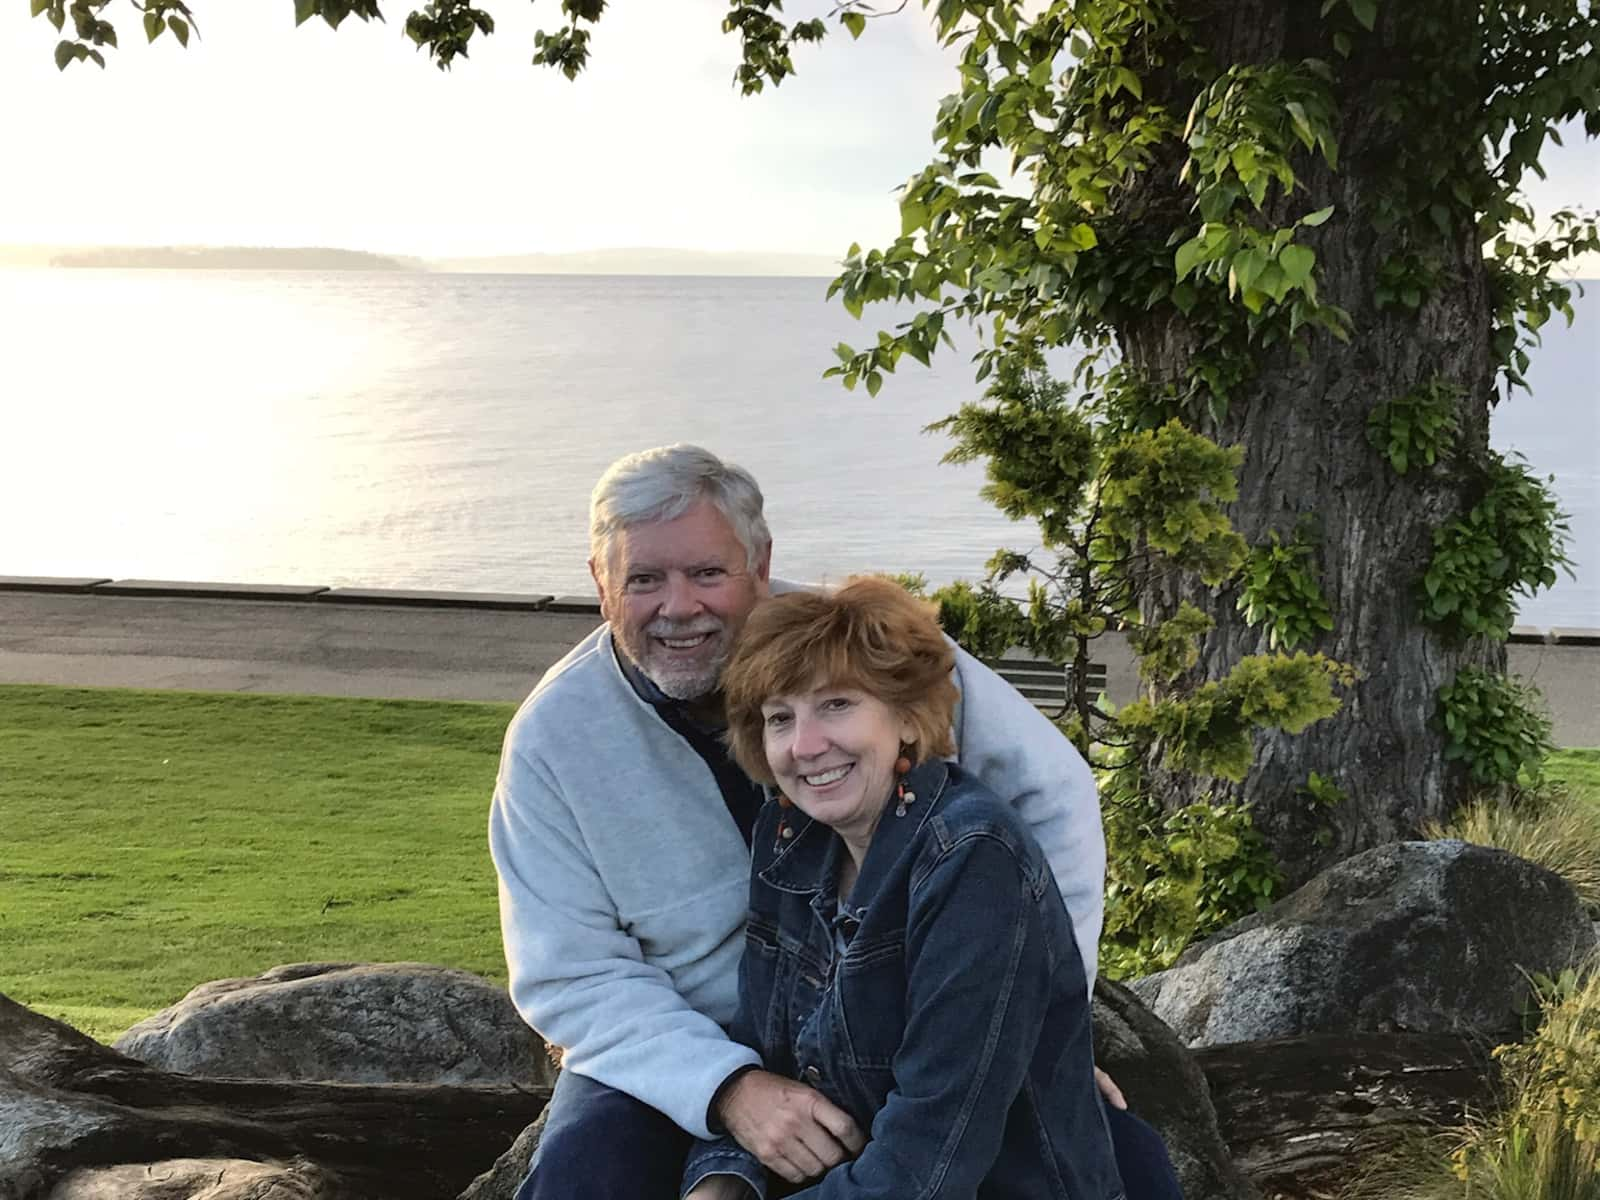 Pam & Andrew from San Diego, California, United States